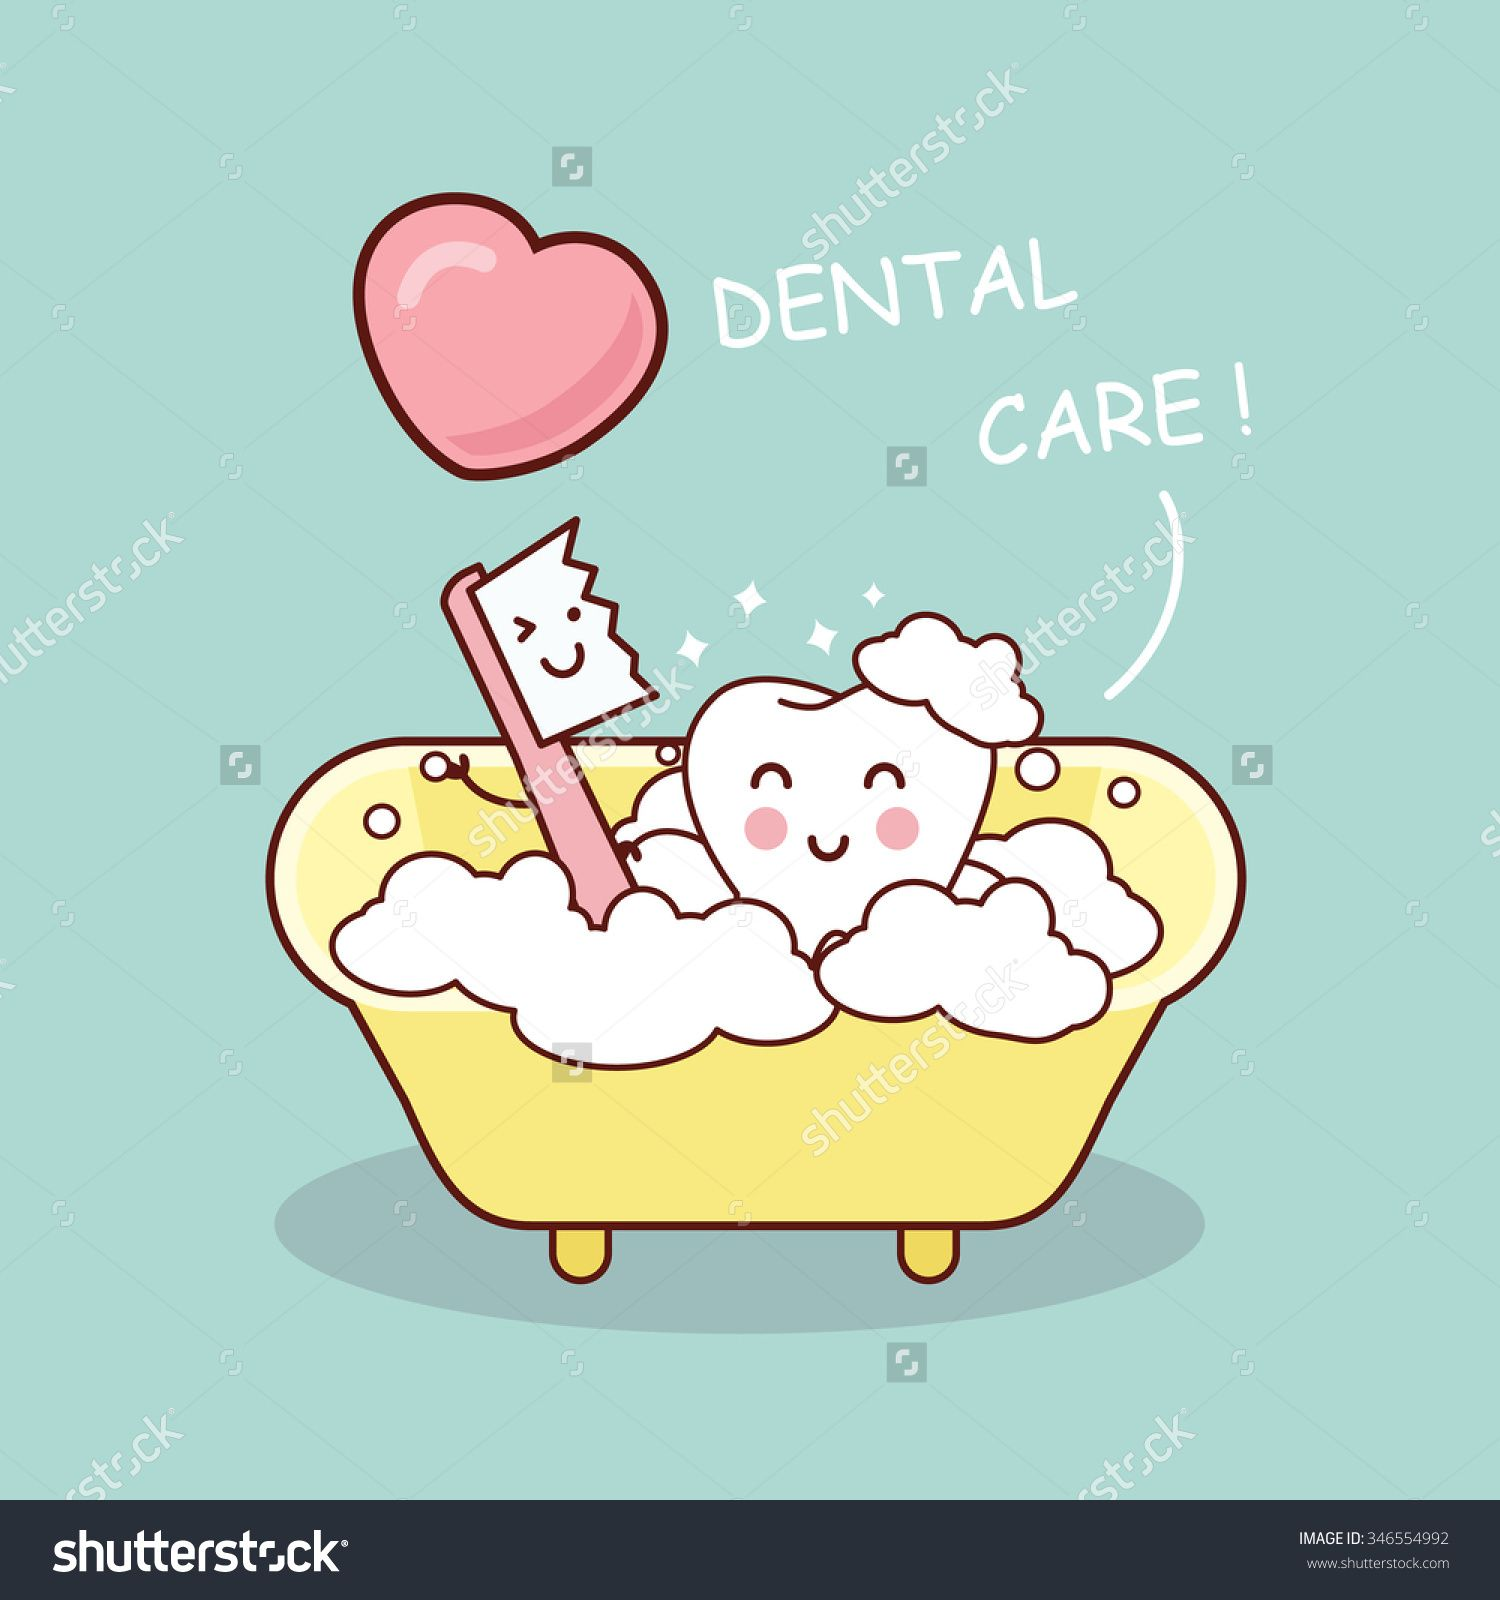 Cute Cartoon Tooth Brush And Clean, Great For Health Dental Care ...